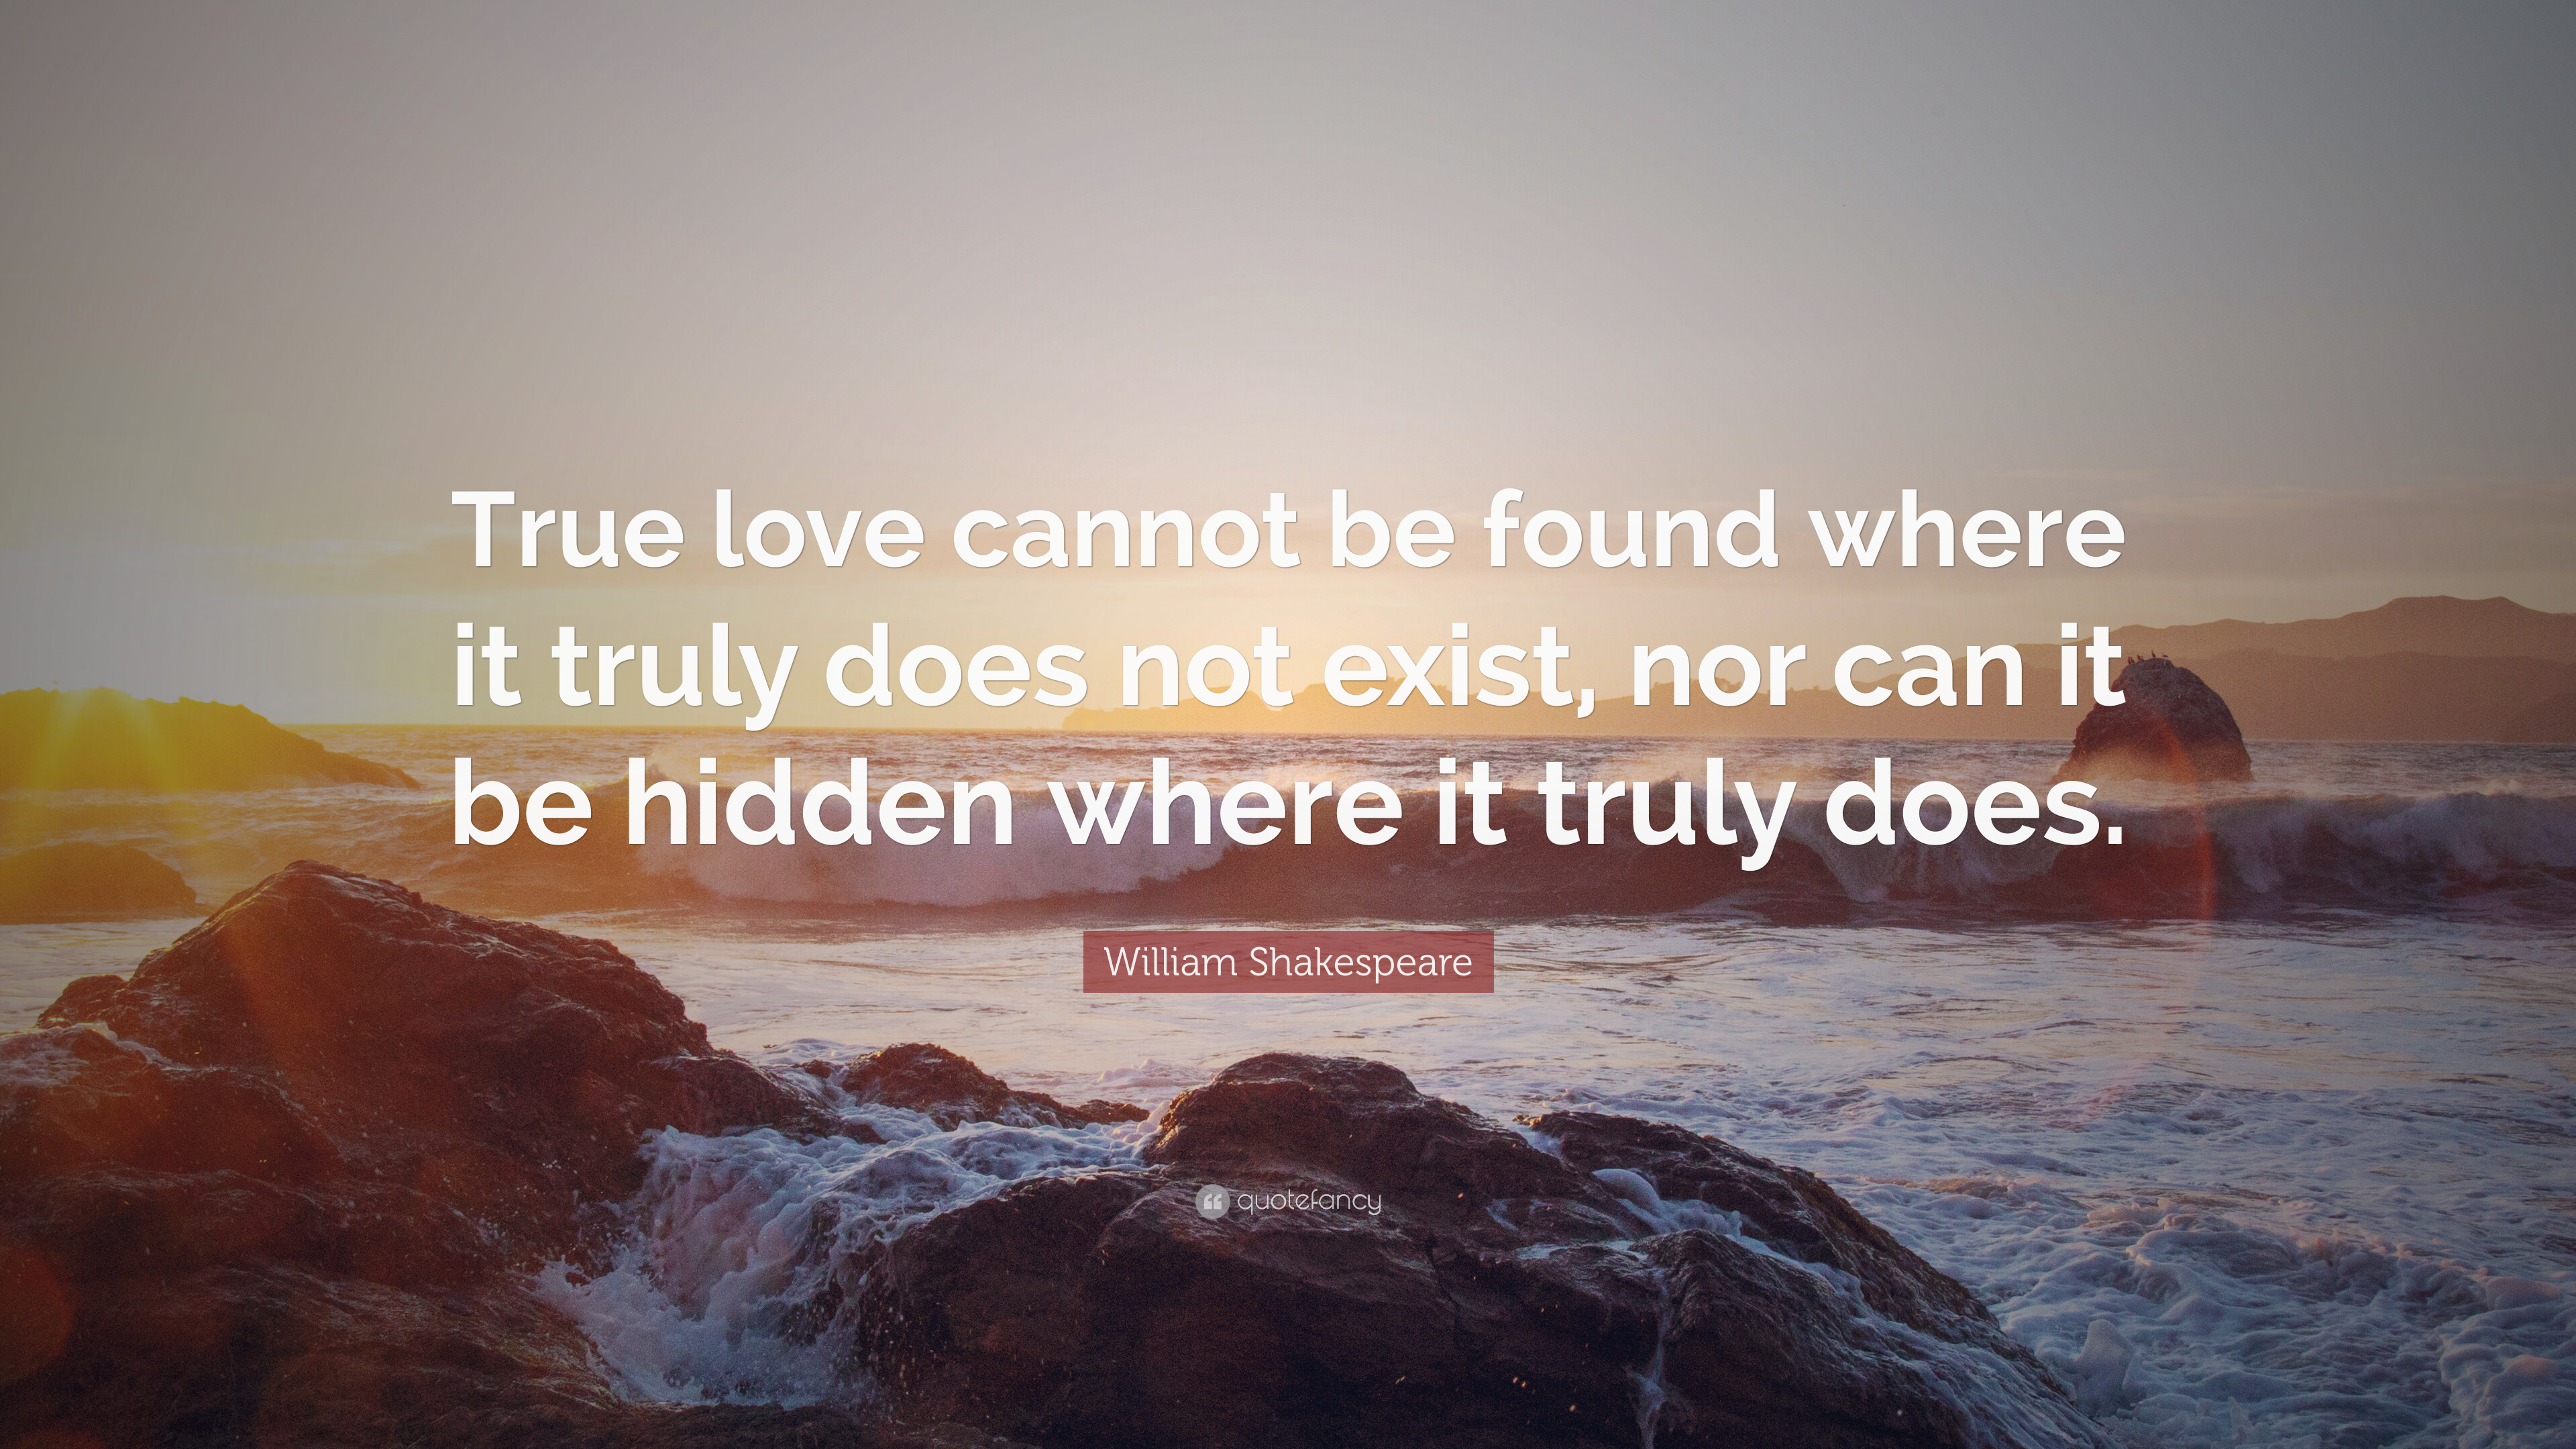 William Shakespeare Quote True Love Cannot Be Found Where It Truly